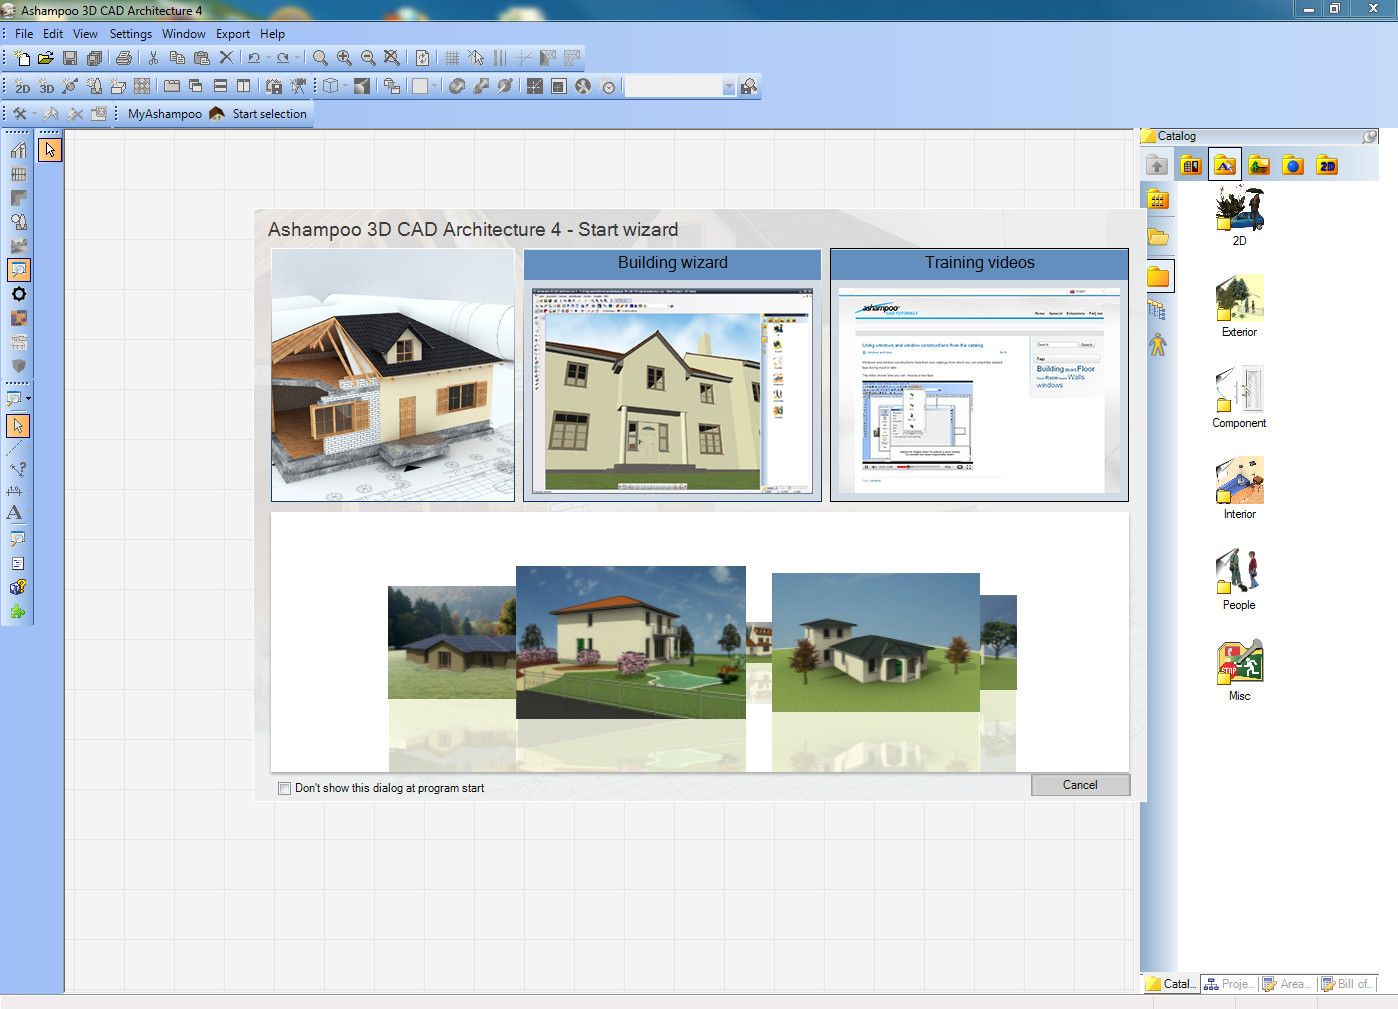 New ashampoo 3d cad architecture 4 best software 4 Architecture software online free